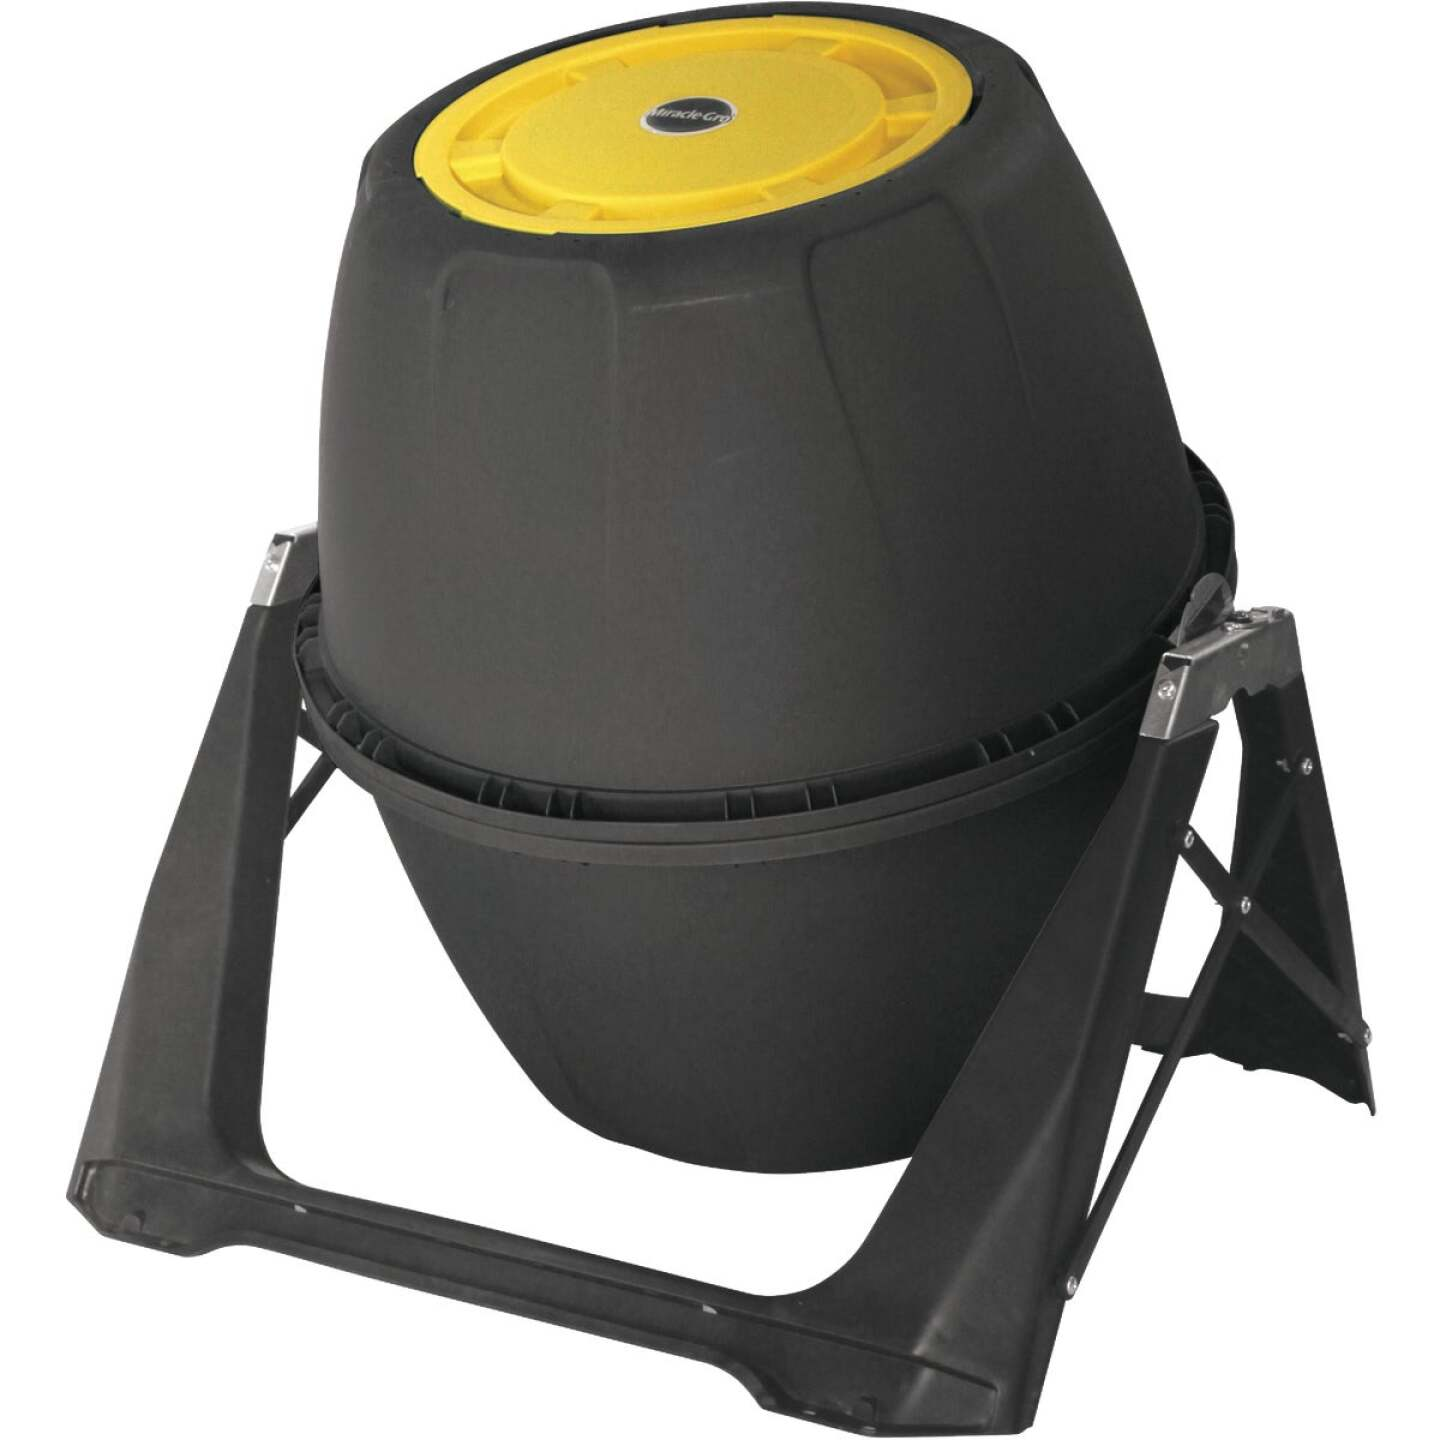 Miracle-Gro Tumbling Composter (48-Gallon) Image 1